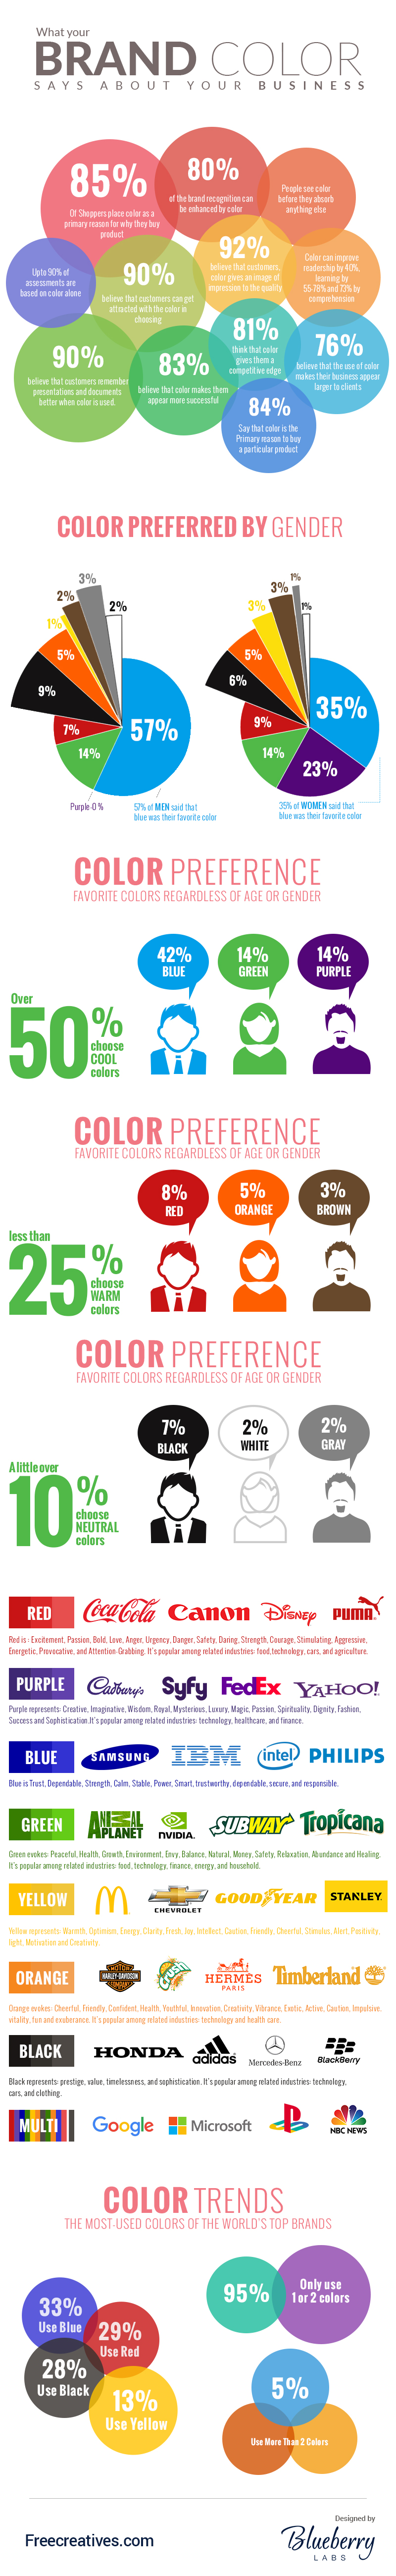 infographic-brand colors